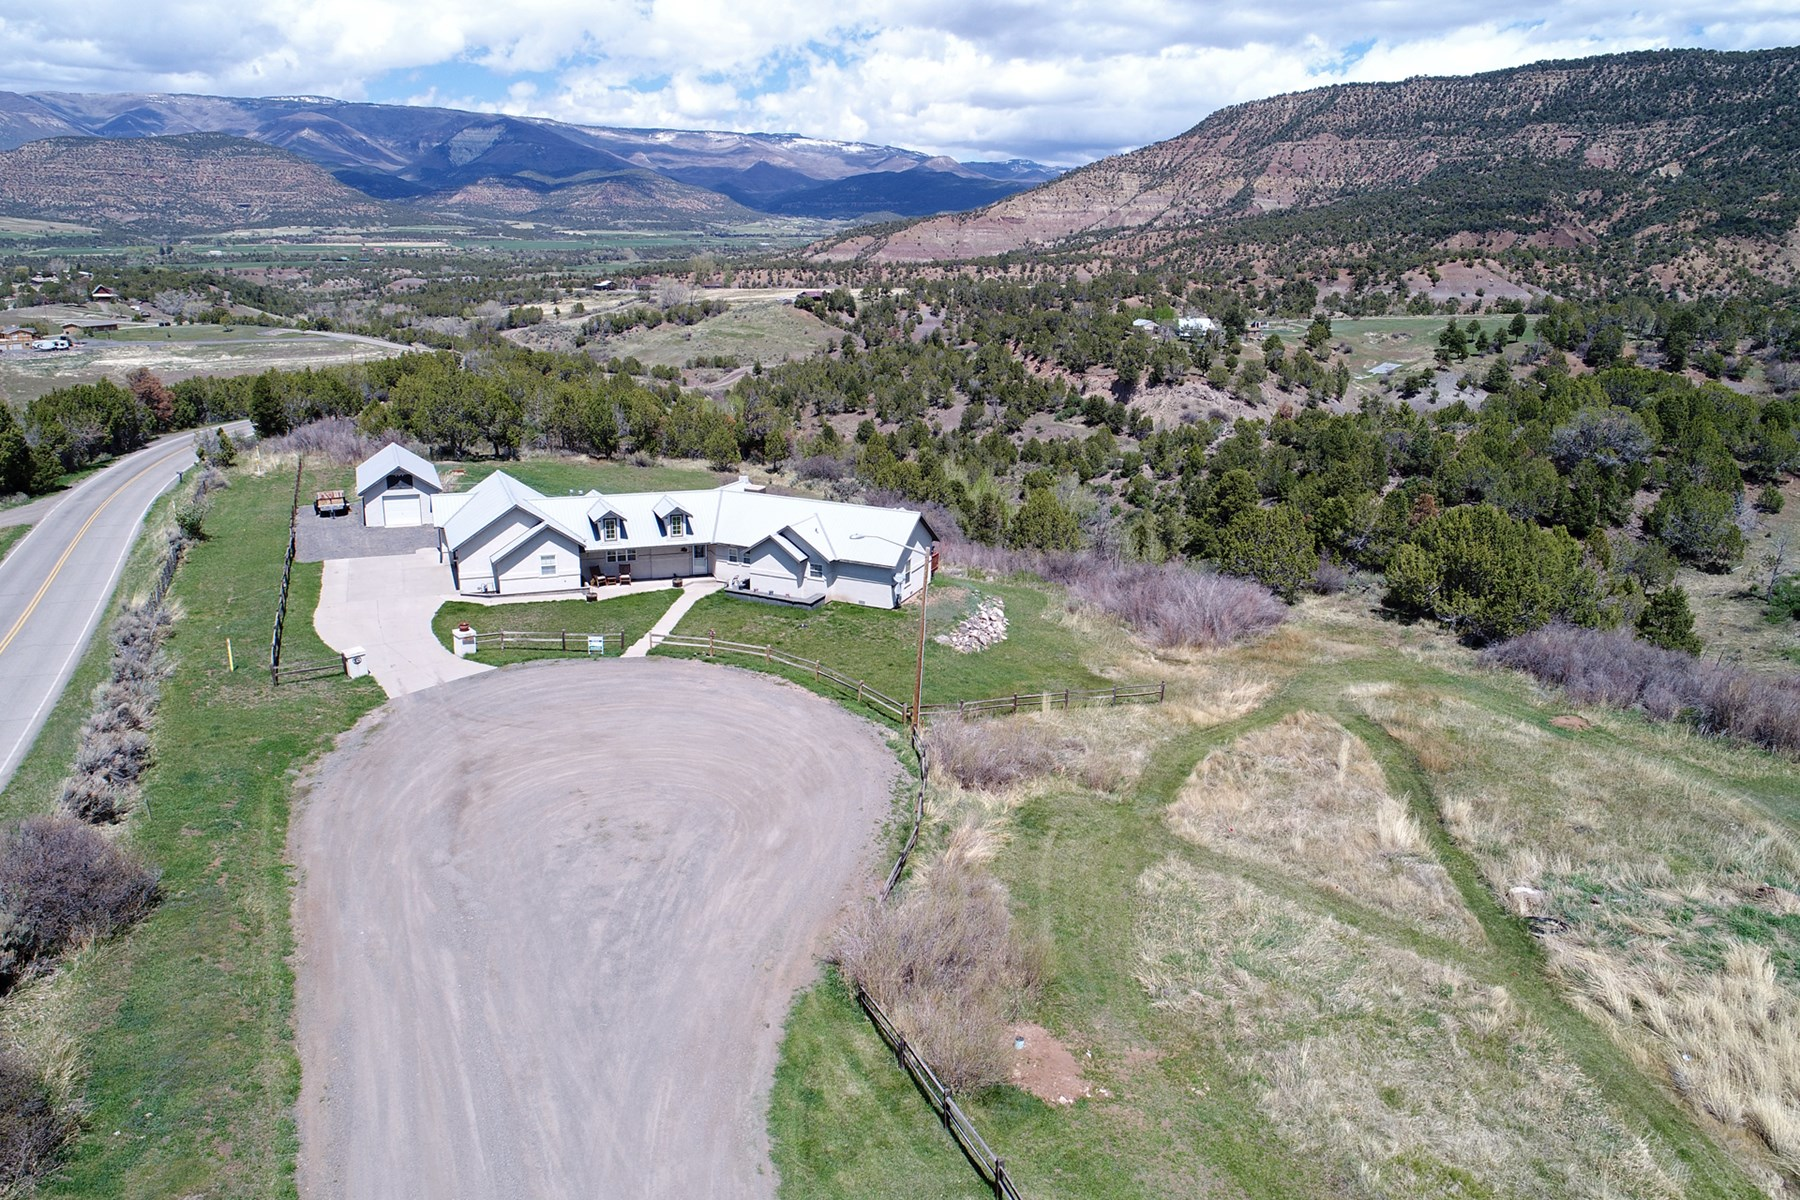 Ranch Style Home with Shop and Acreage for Sale in Colorado